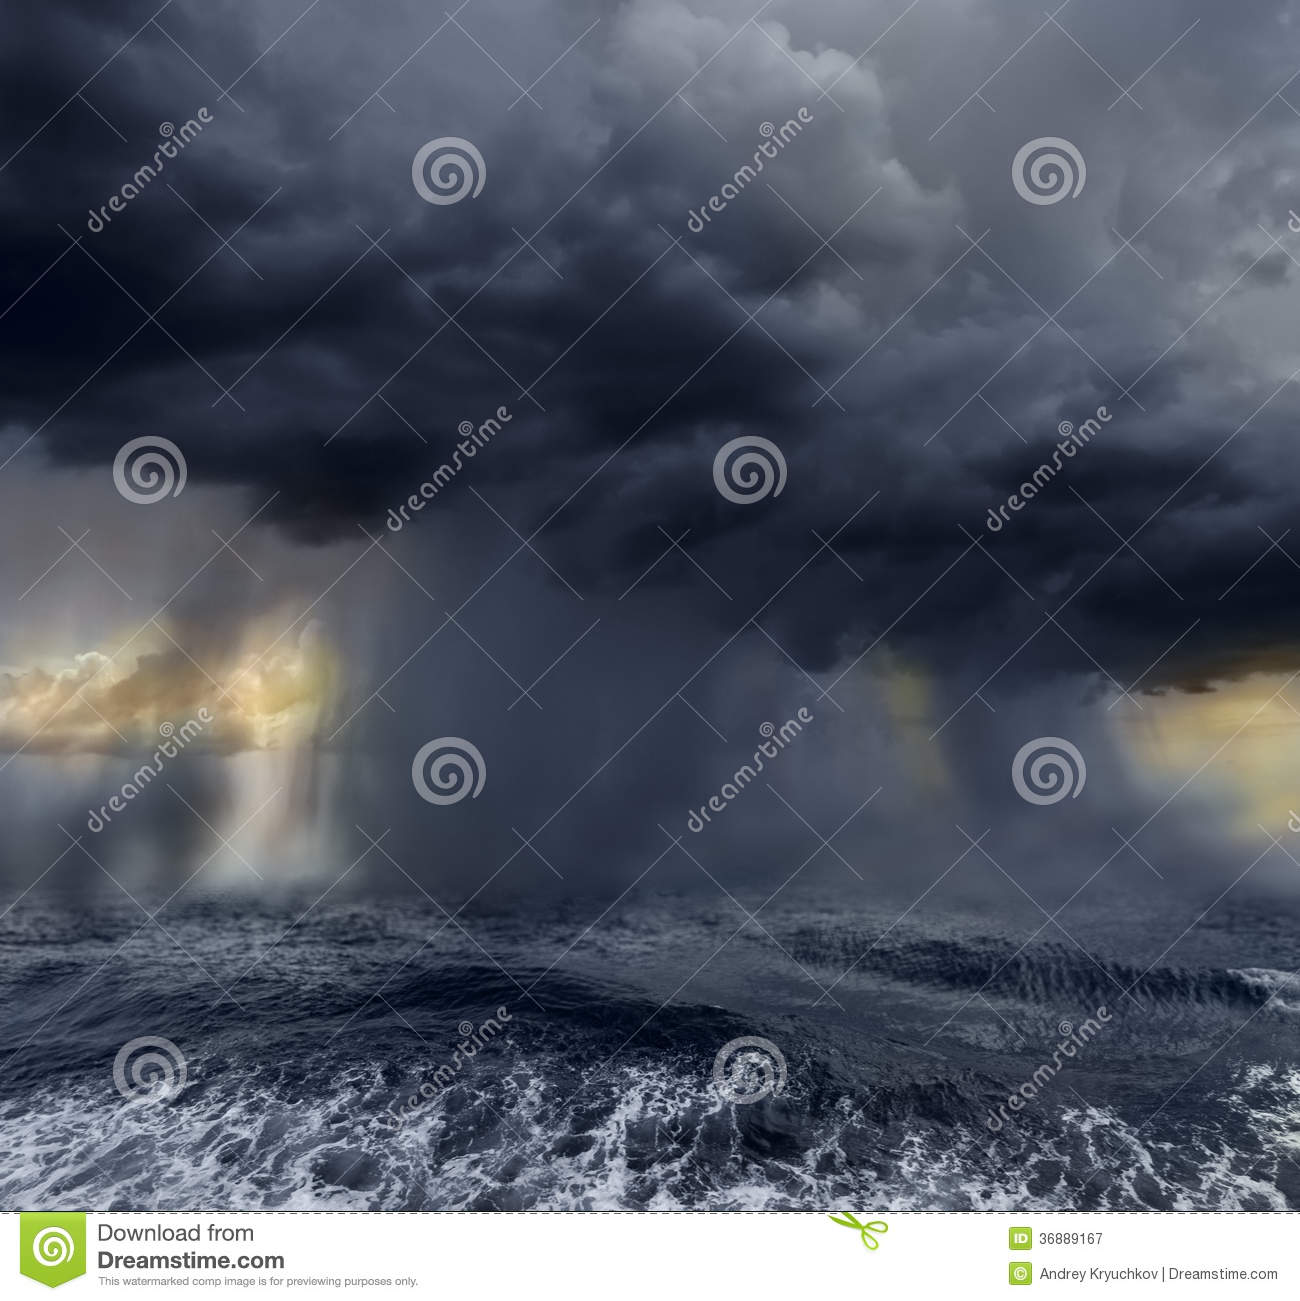 Download Oceano tempestoso immagine stock. Immagine di uragano - 36889167